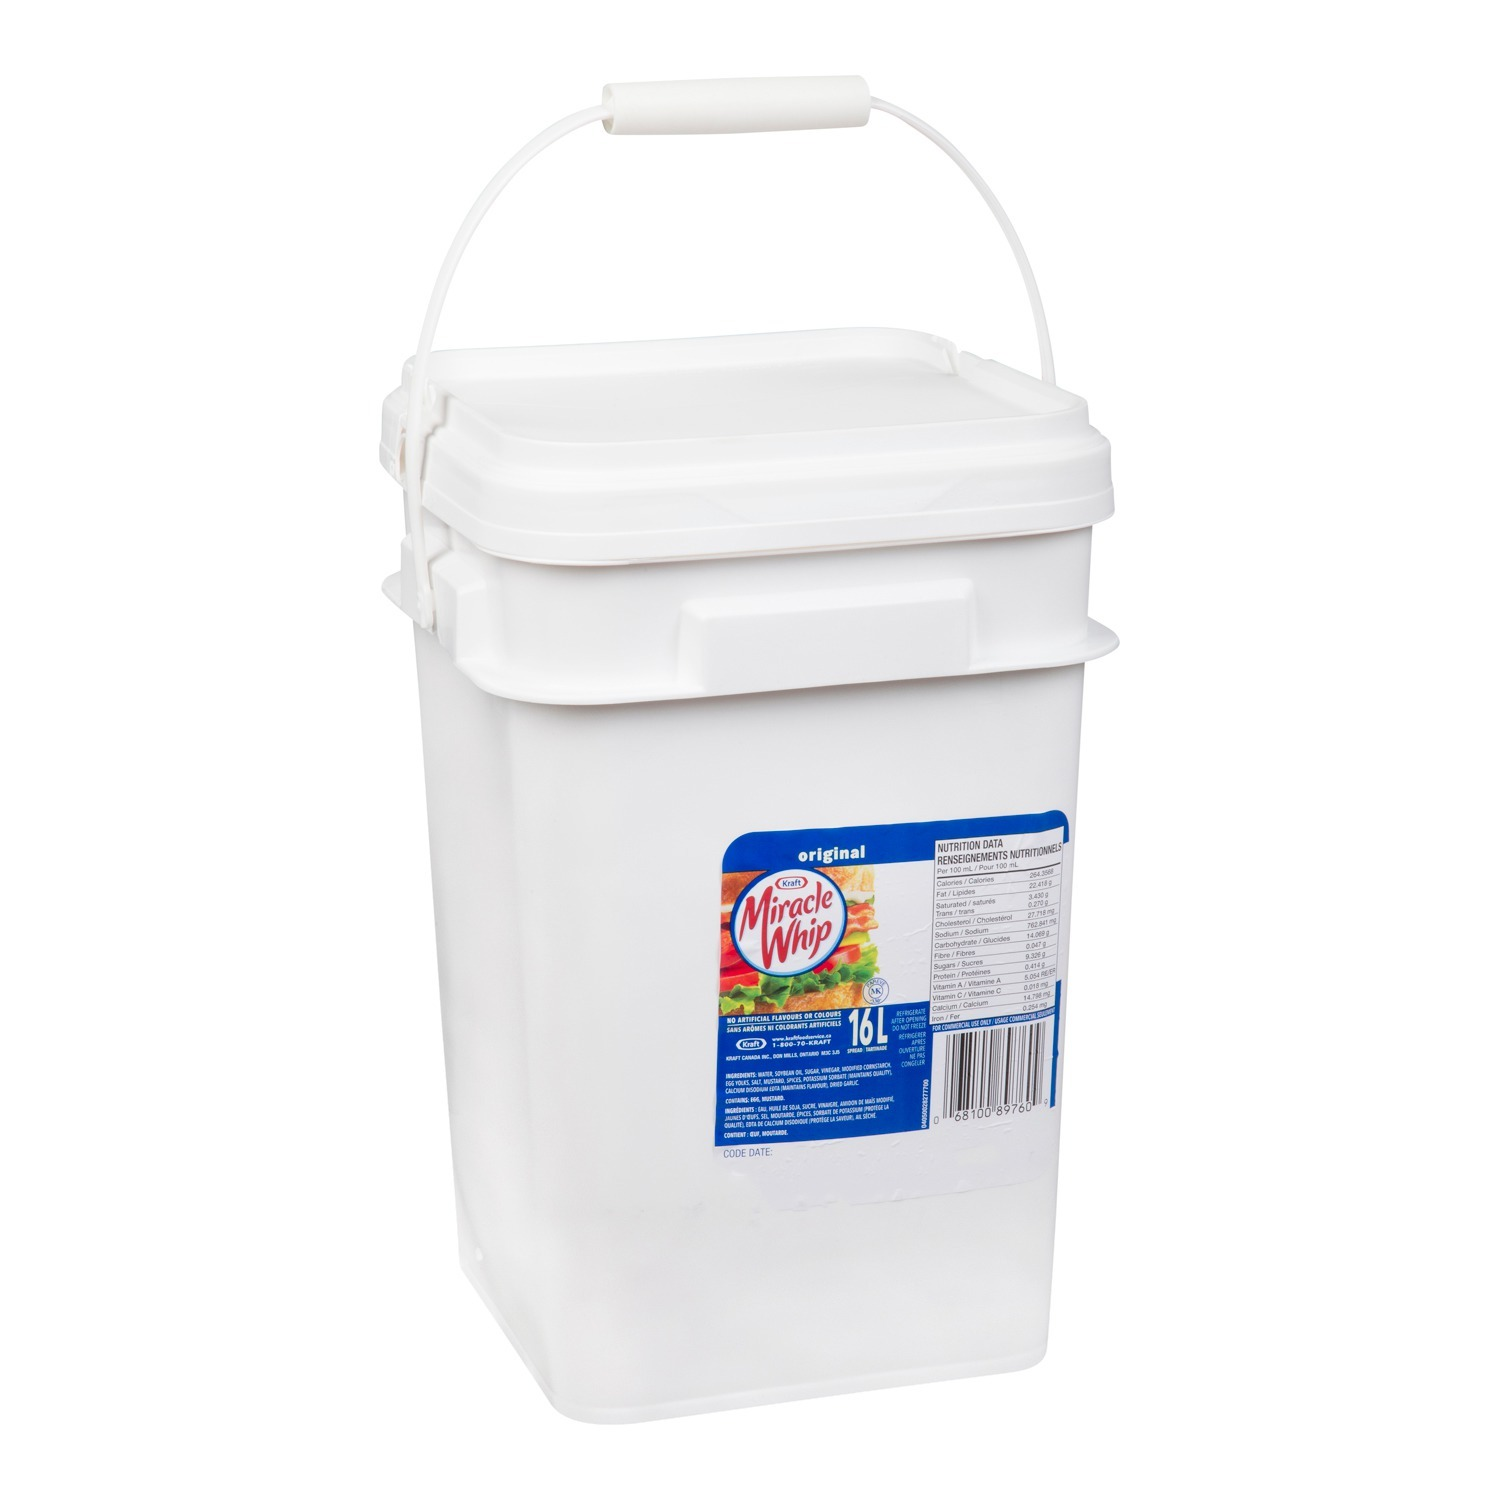 KRAFT MIRACLE WHIP tartinade, seau – 1 x 16 L